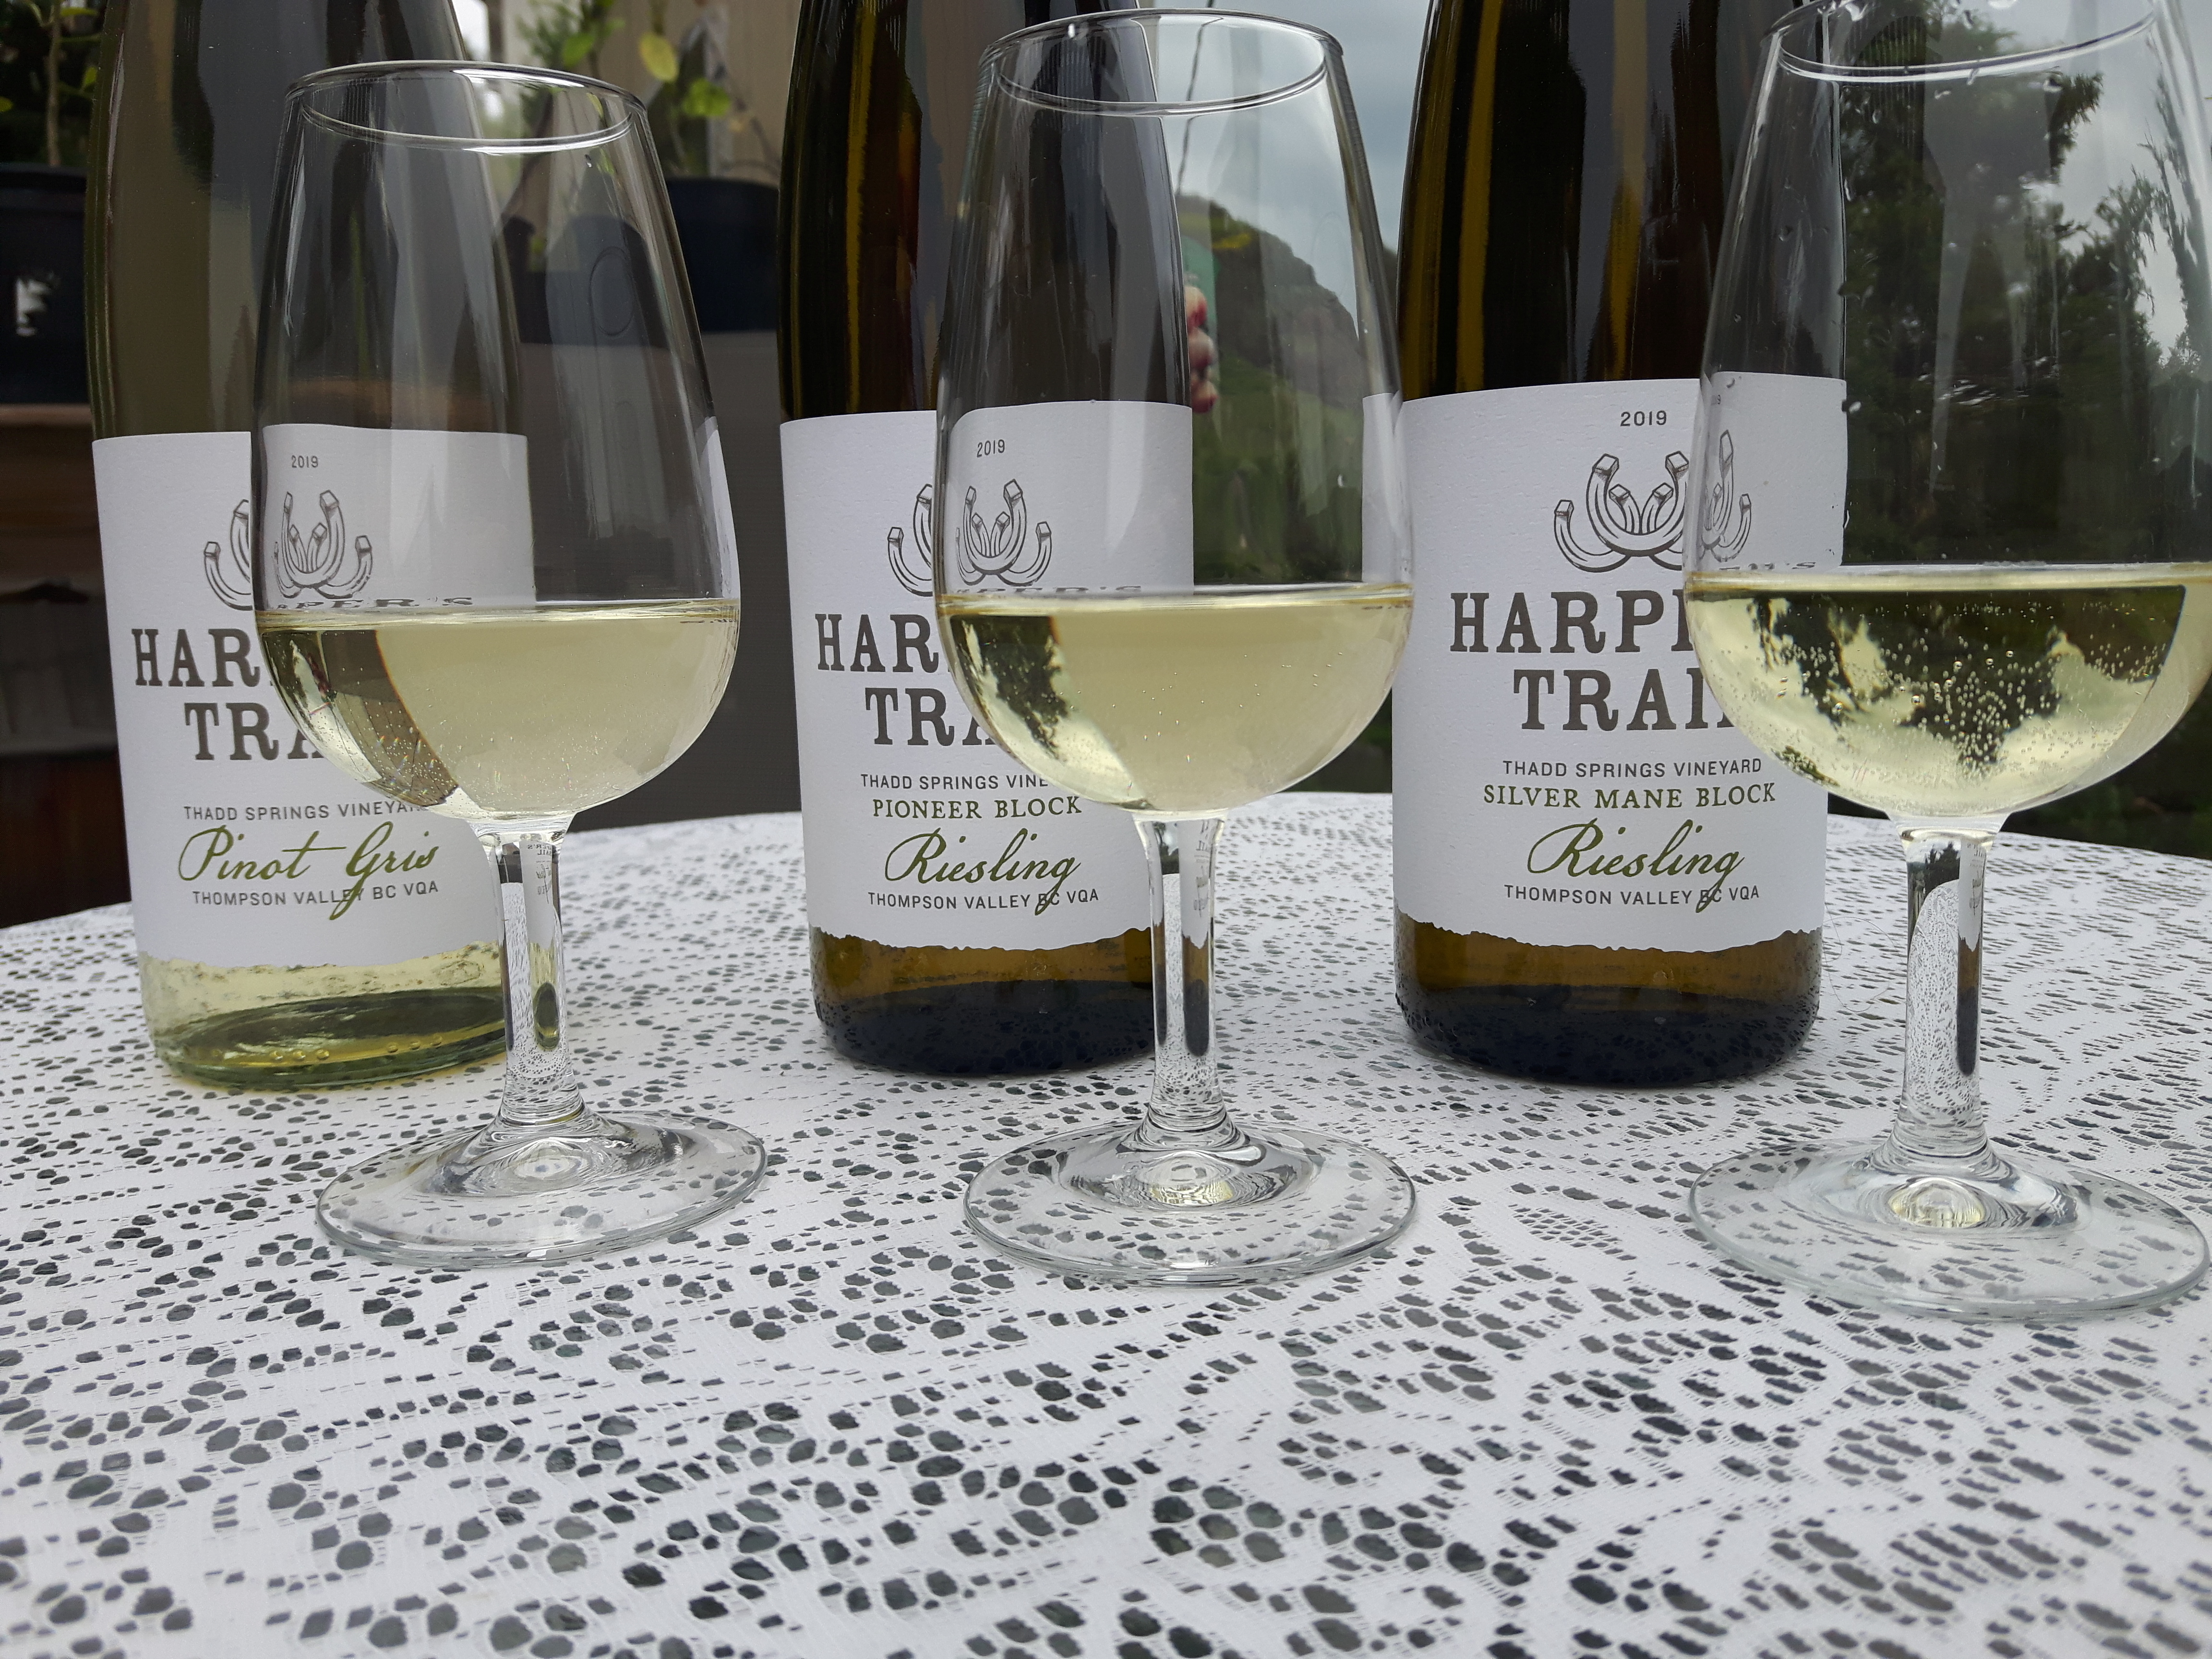 Harpers Trail perfect trio with poured ISO glasse July 2020